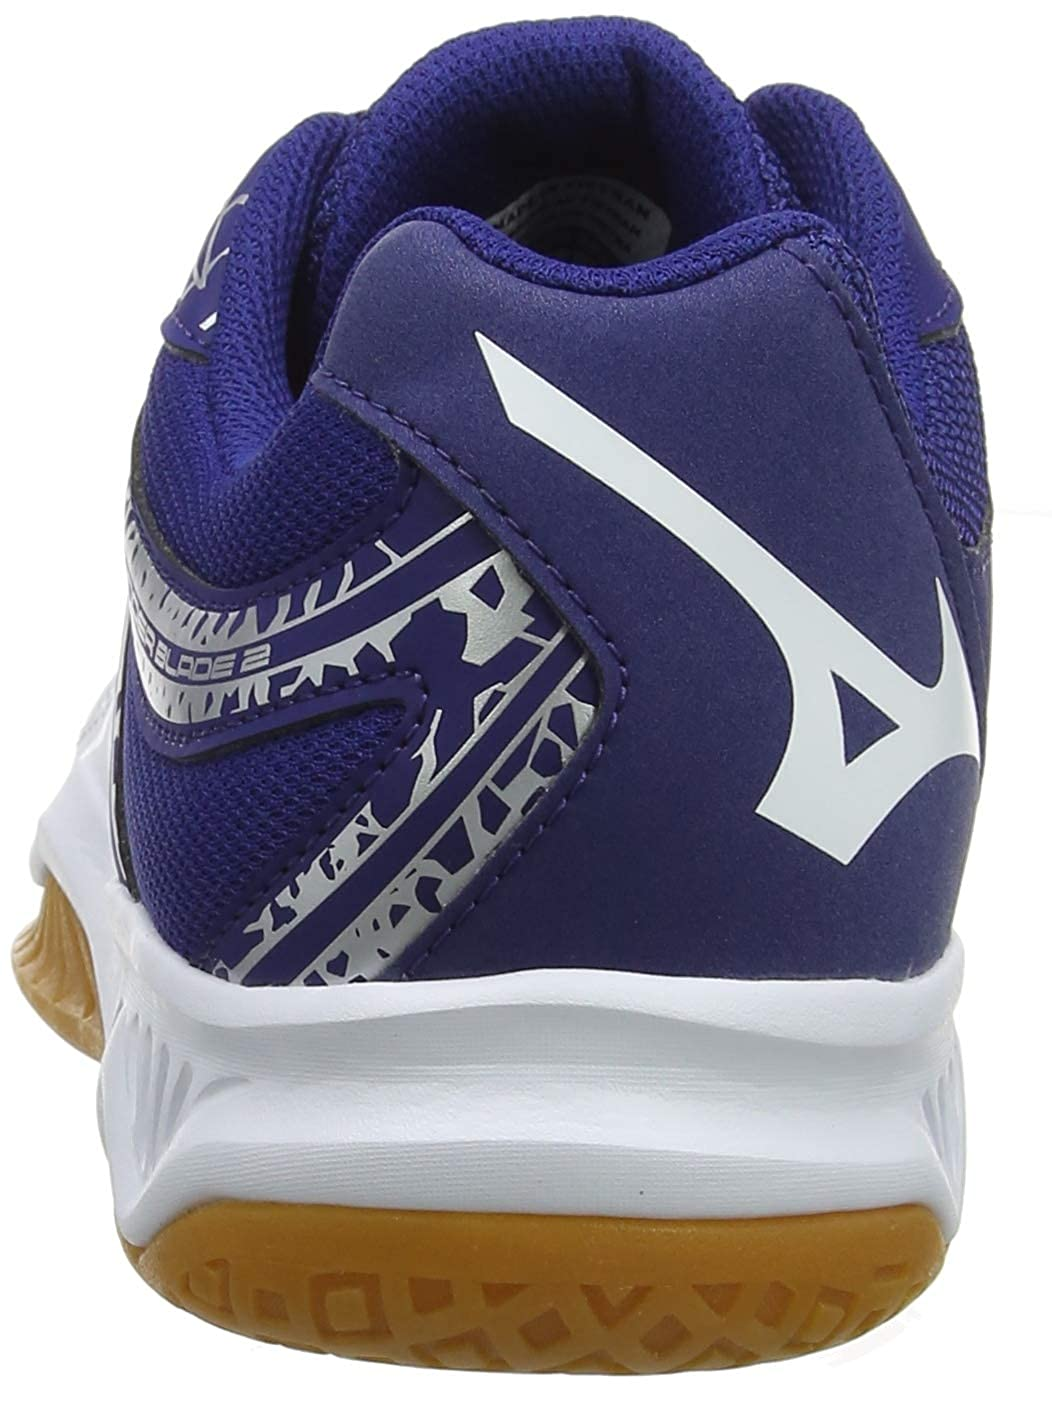 Mizuno Unisex Adults/' Thunder Blade 2 Volleyball Shoes